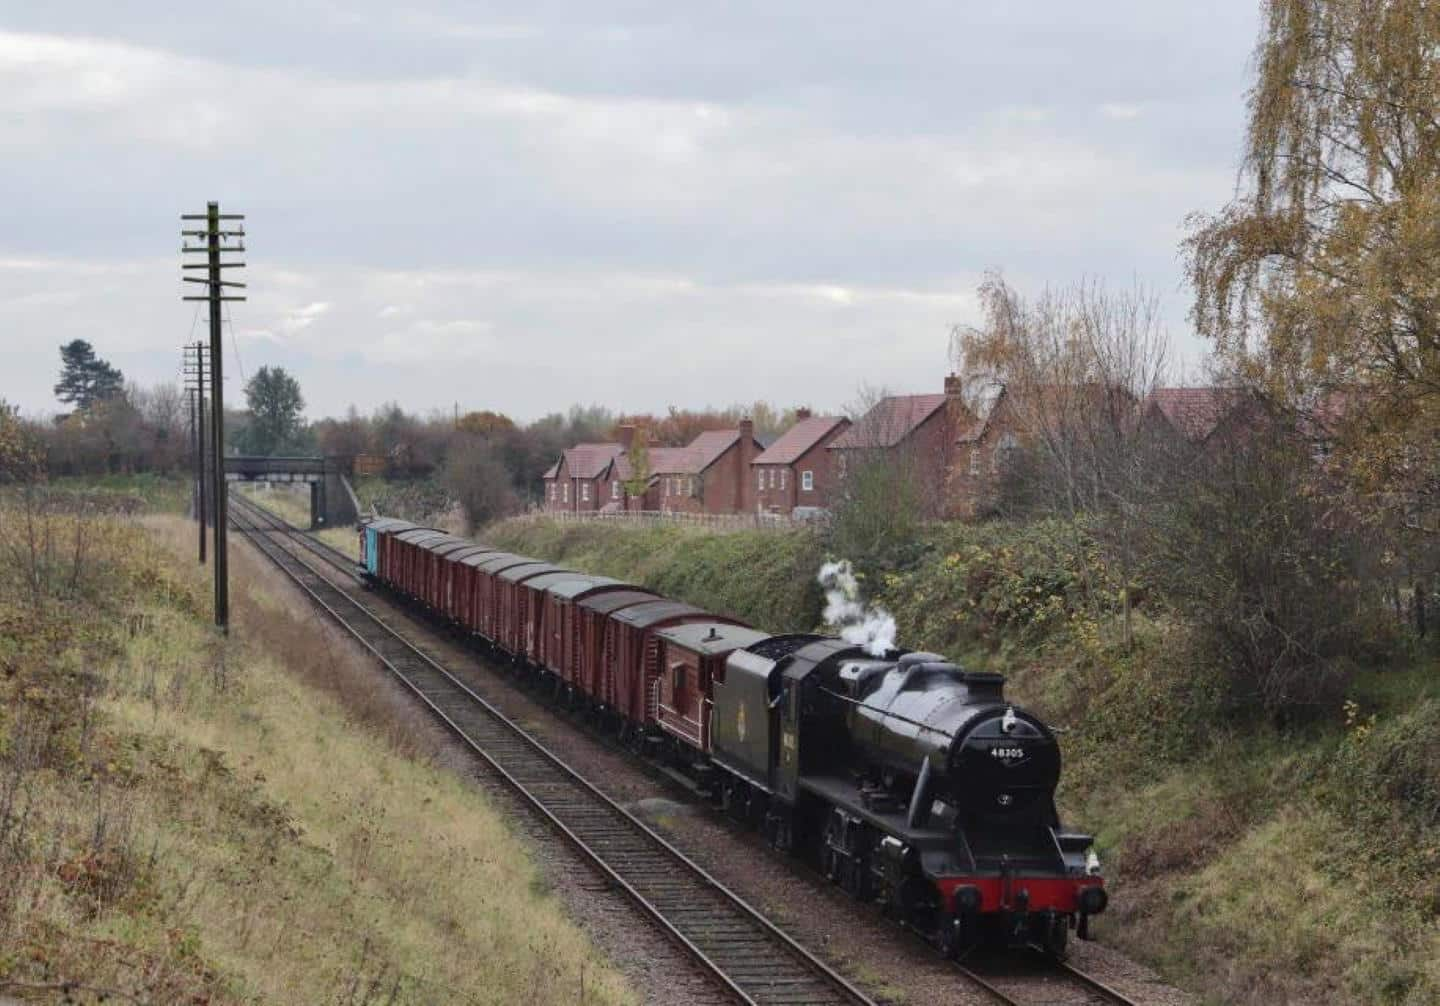 48305 at GCR // Credit Cameron White